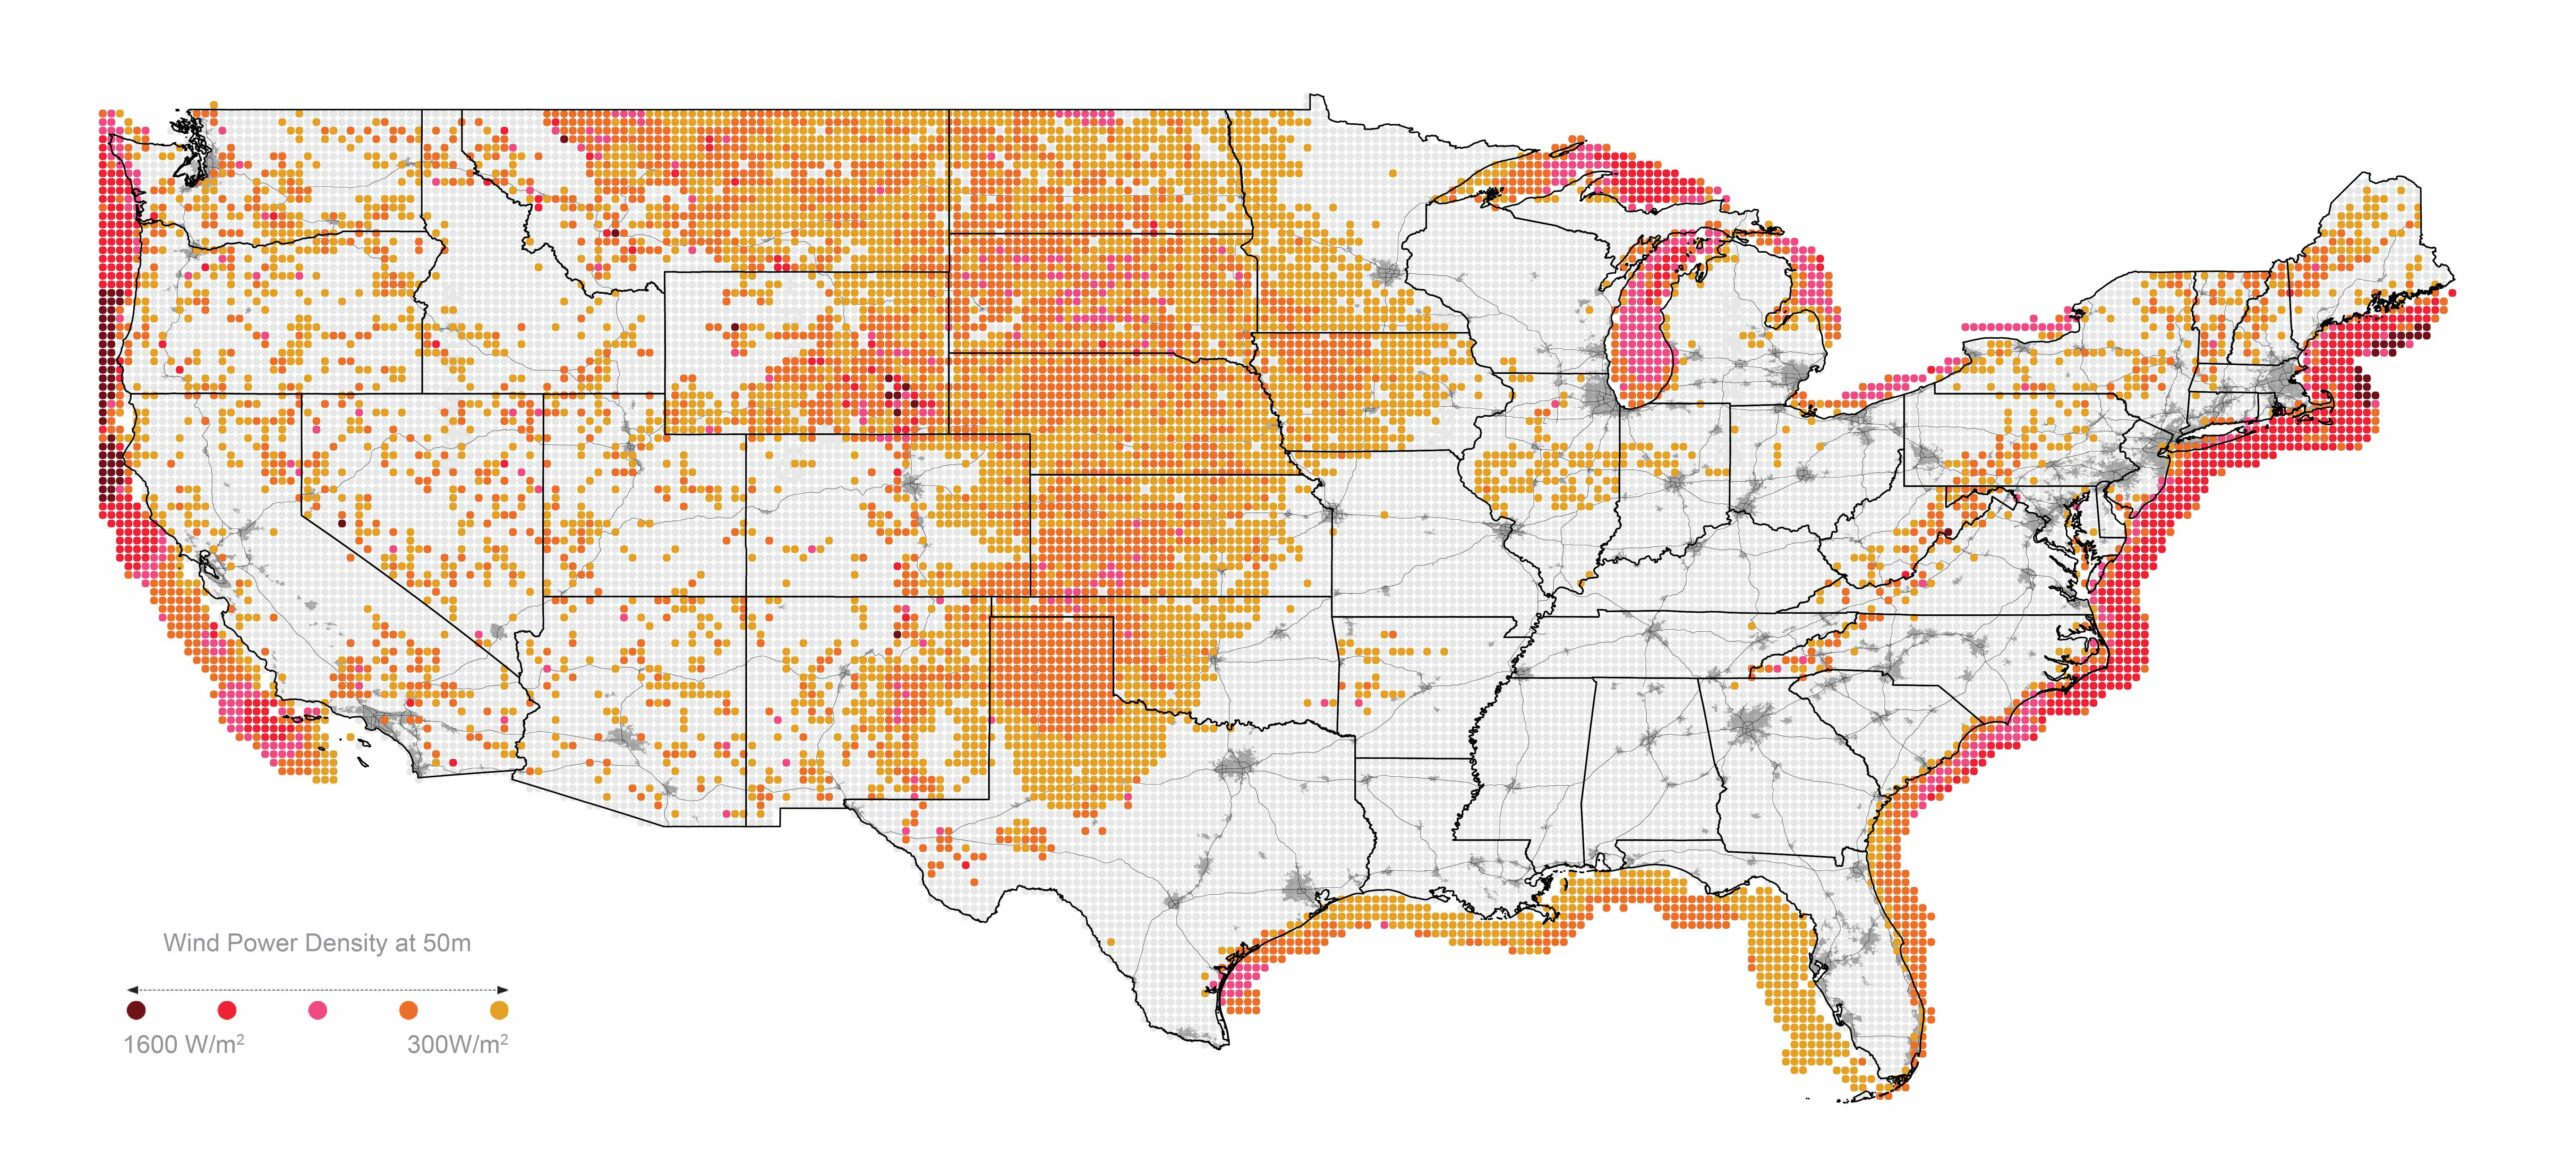 Map of wind power potential in the US lower 48